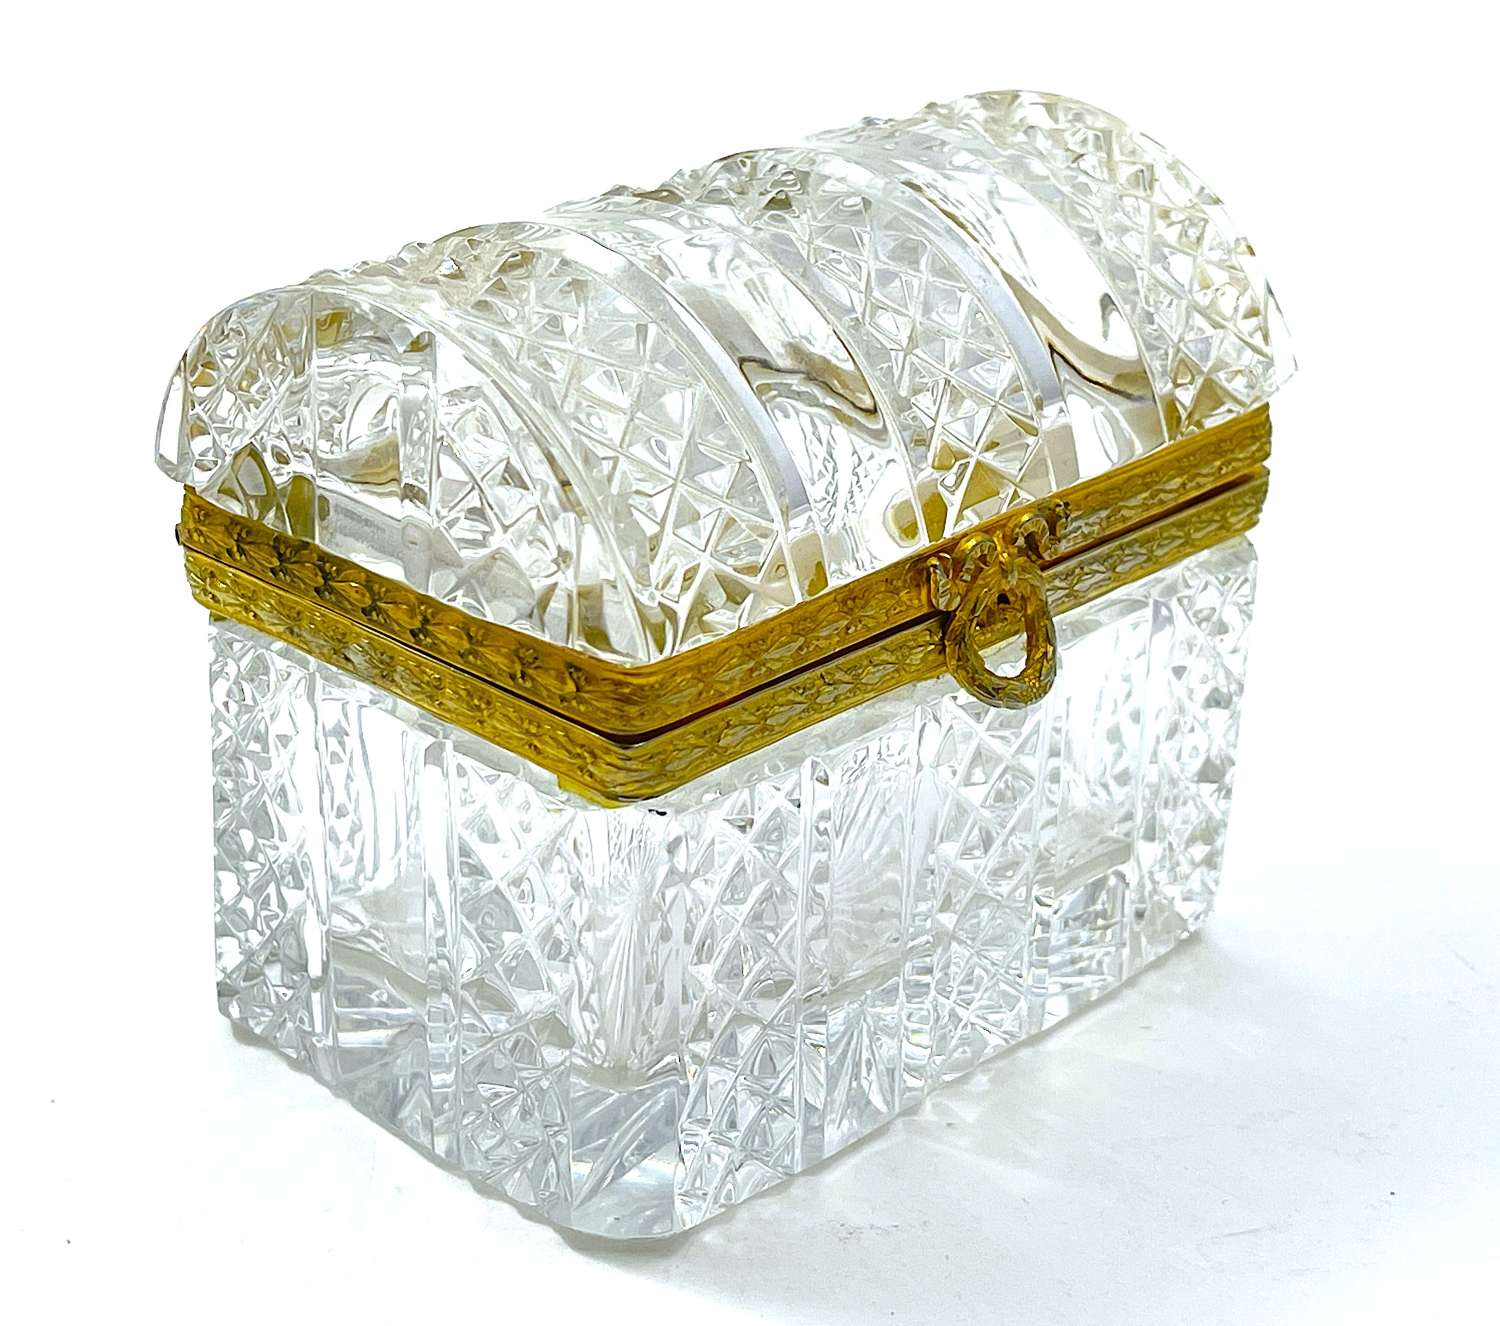 Antique Baccarat Cut Crystal Jewellery Casket Box with Dome Lid